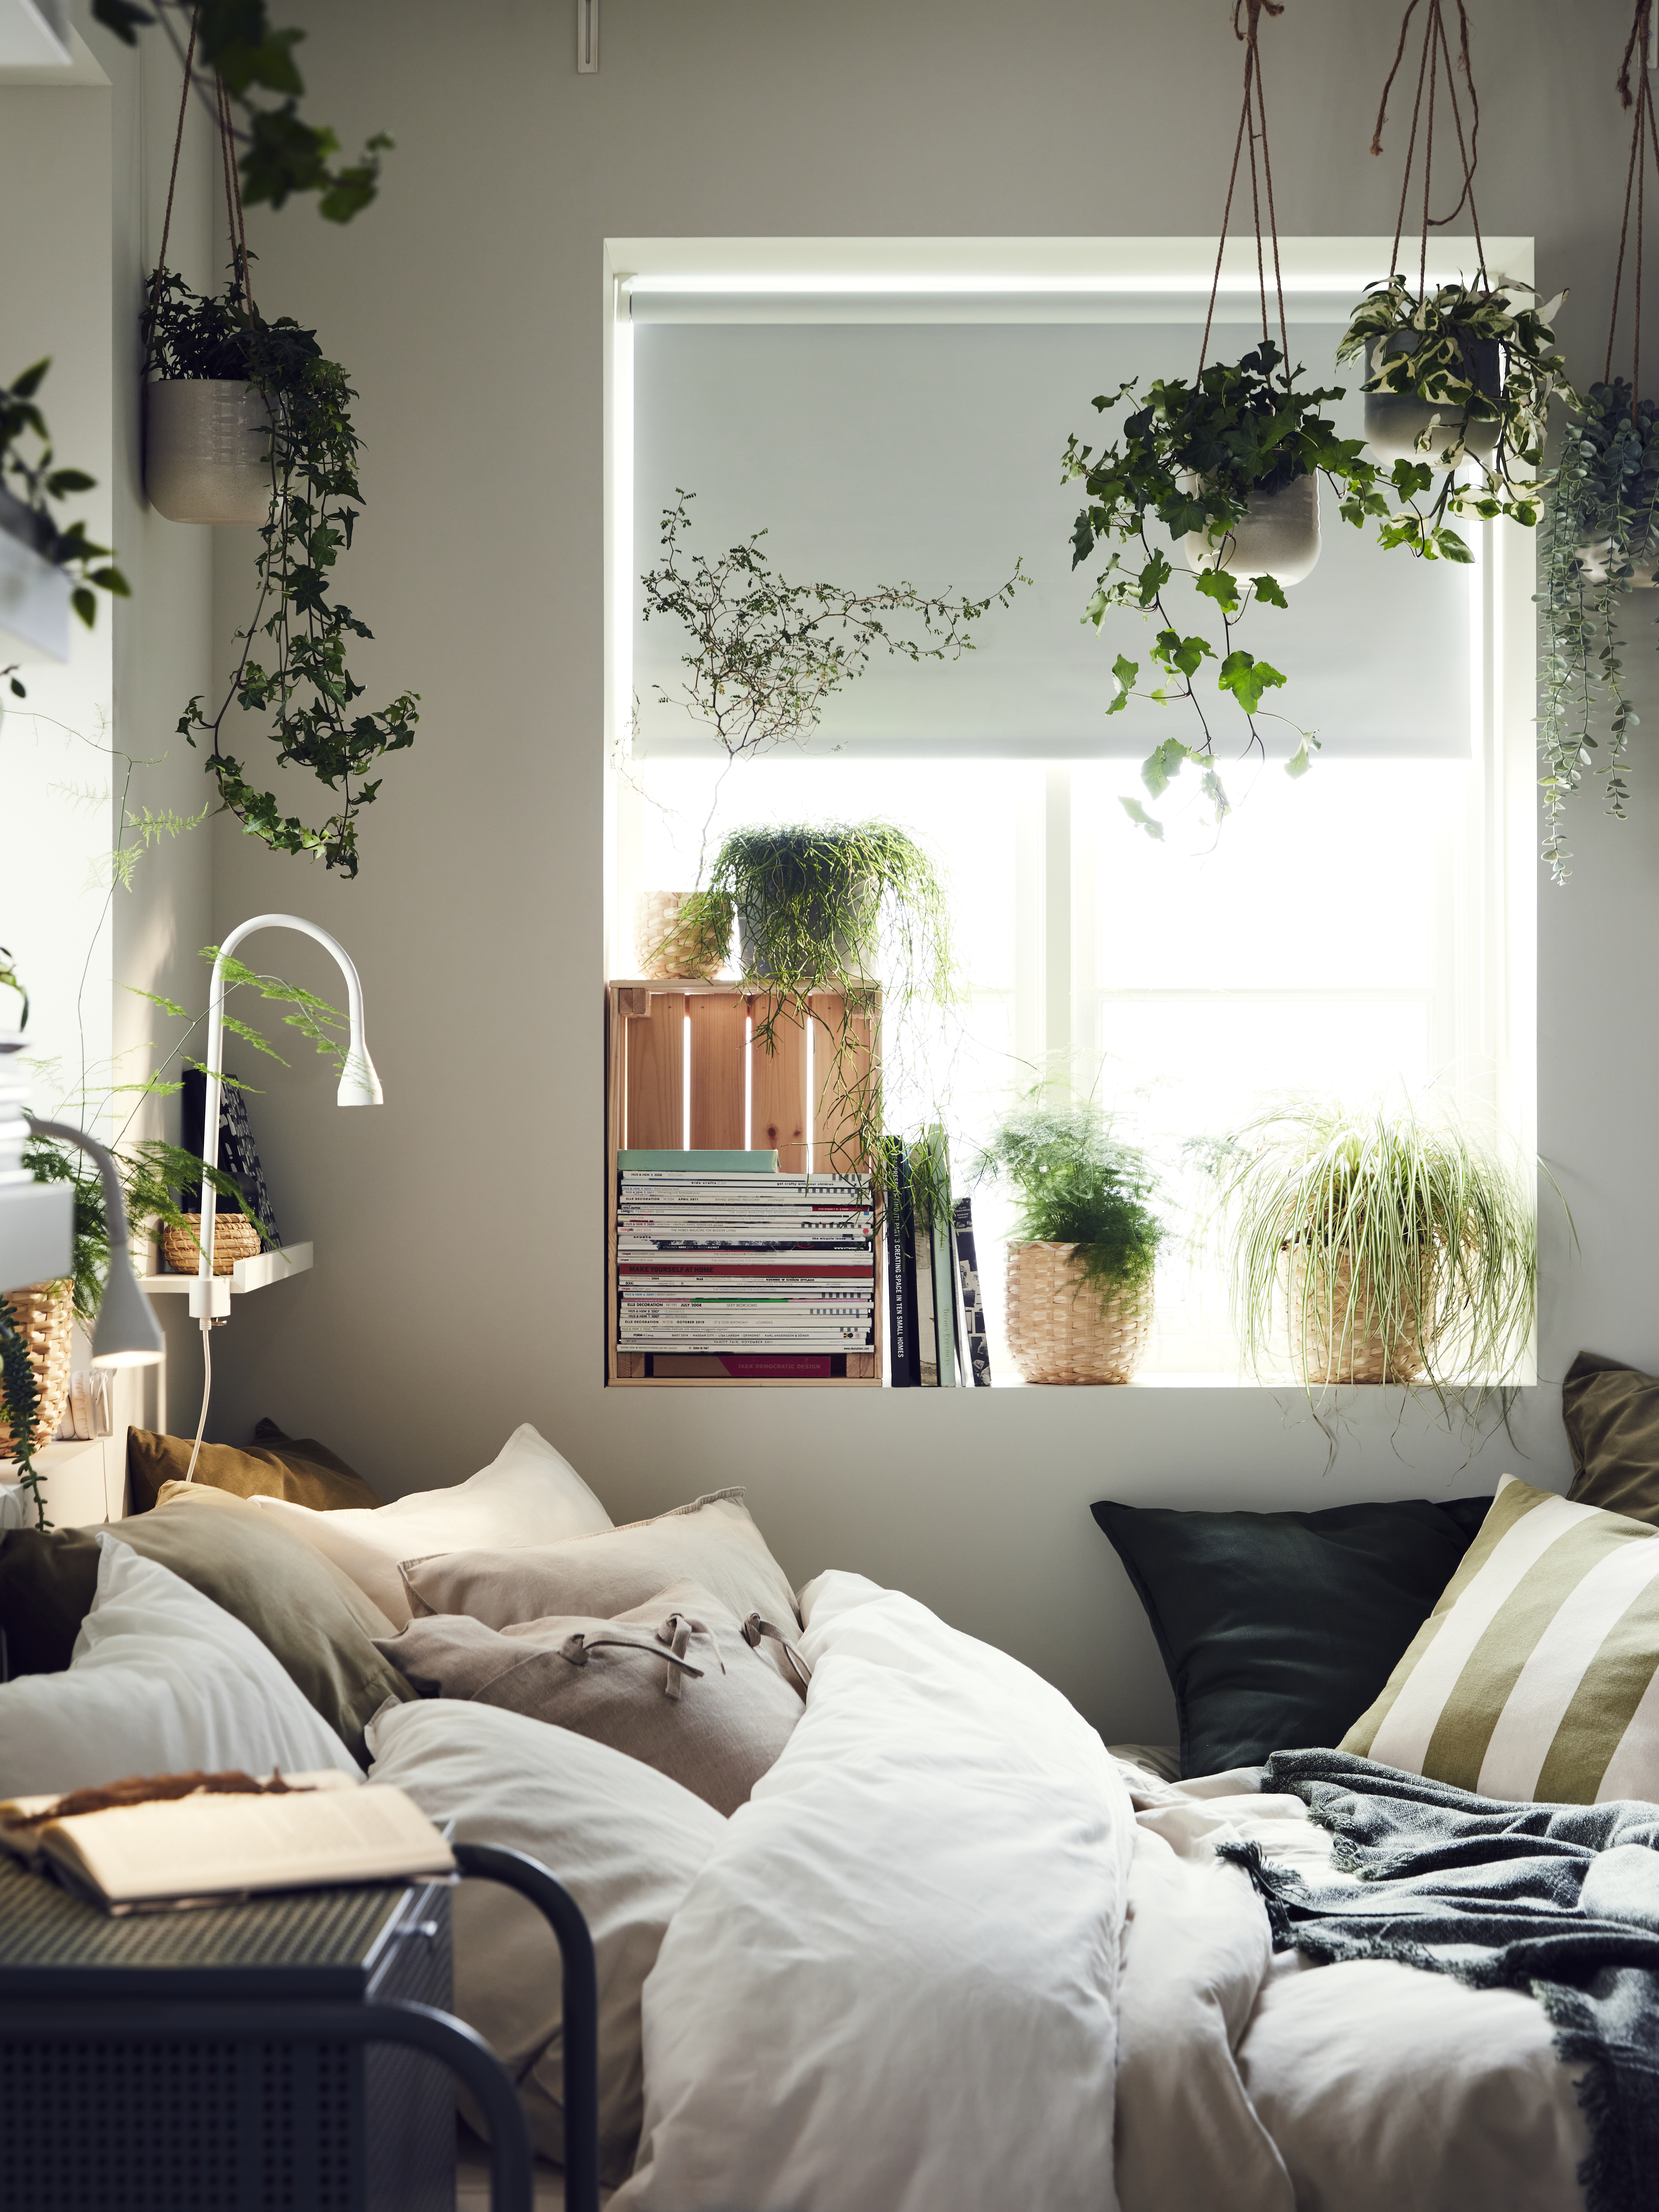 A bed filled with cushions and lots of hanging green plants